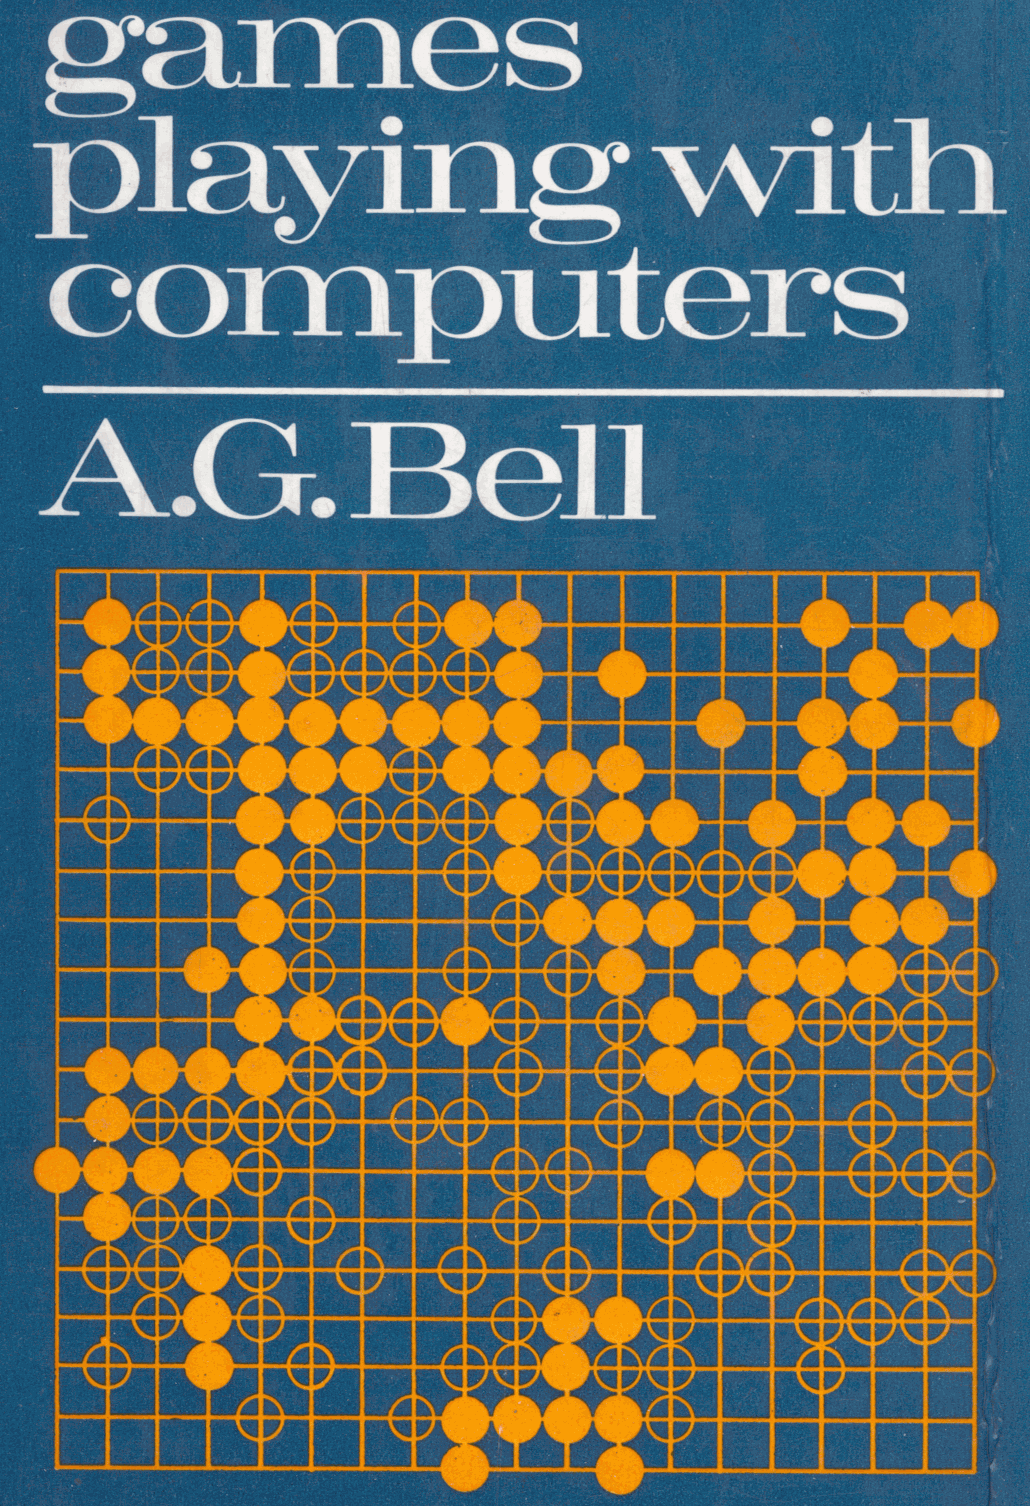 Book Cover: Published 1972 by Allen and Unwin